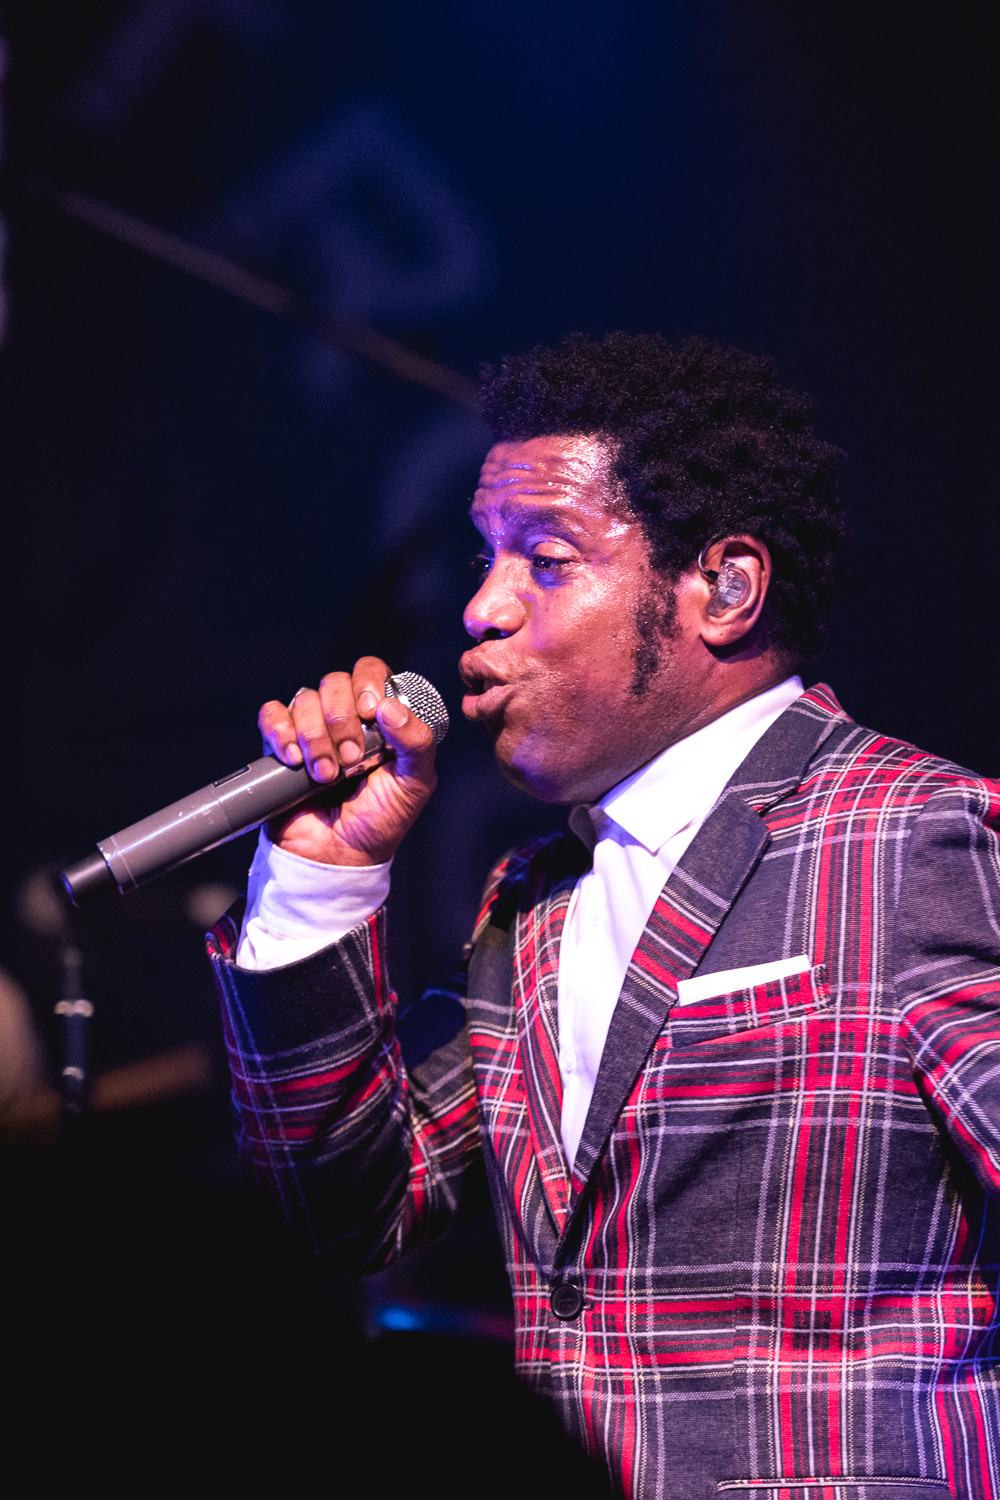 Ty Taylor, singer for Vintage Trouble. Photo: Lmsorenson.net